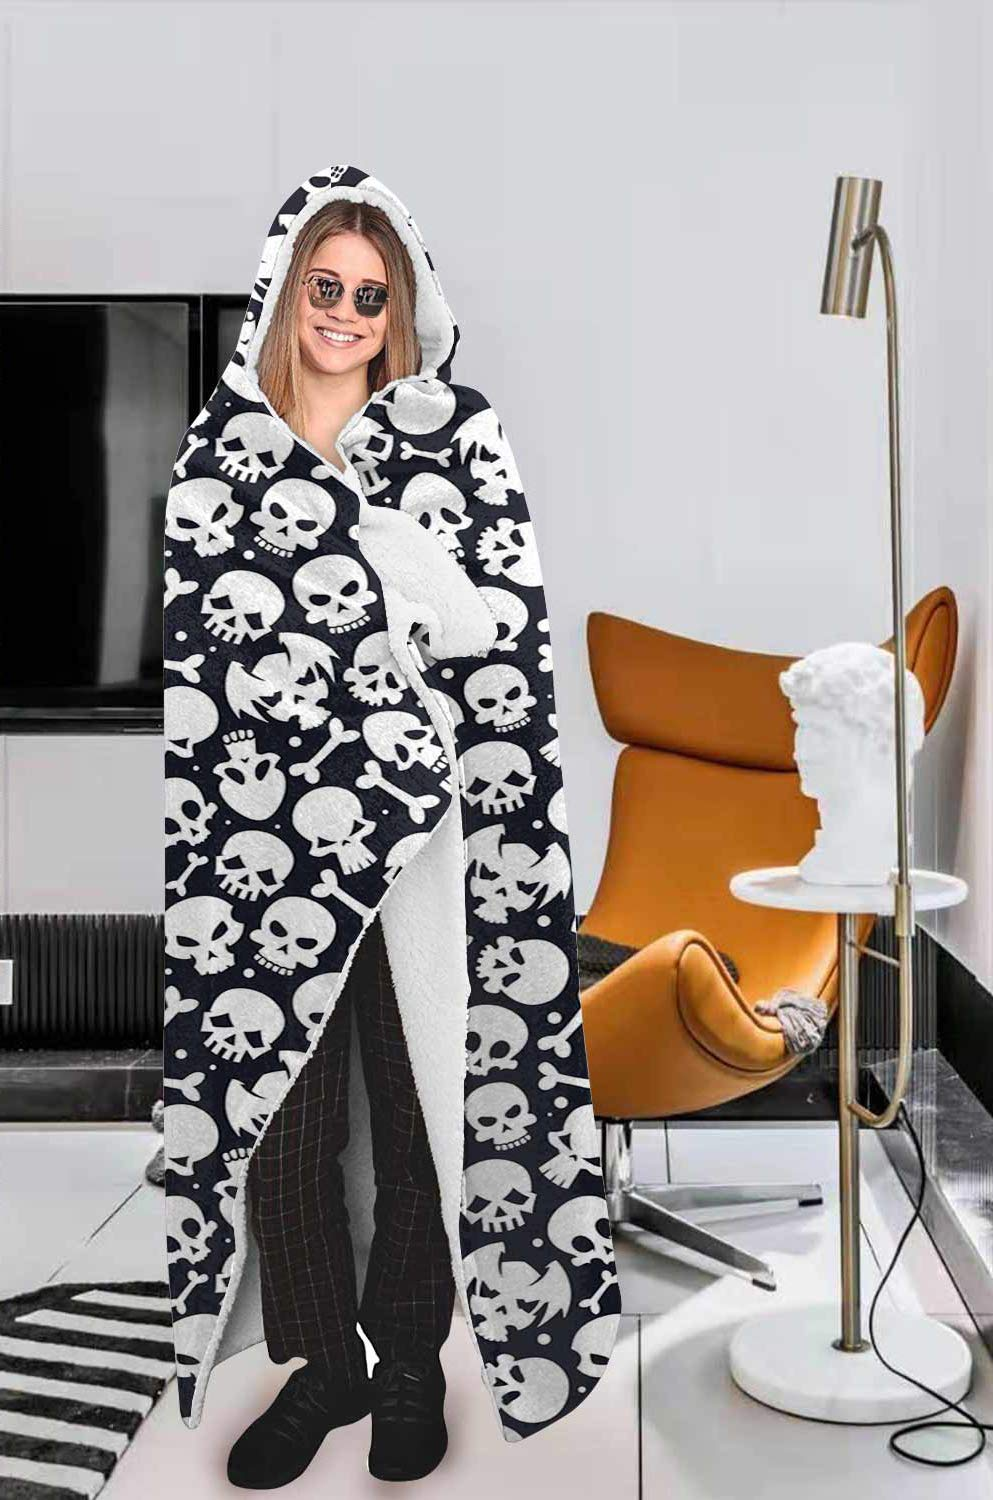 Sugar Skull Hooded Blanket, Comfort Warmth Soft Cozy, Black and White, Rose Skull Sherpa Fleece Blanket for Boys Men Size 50 by 60 Inches